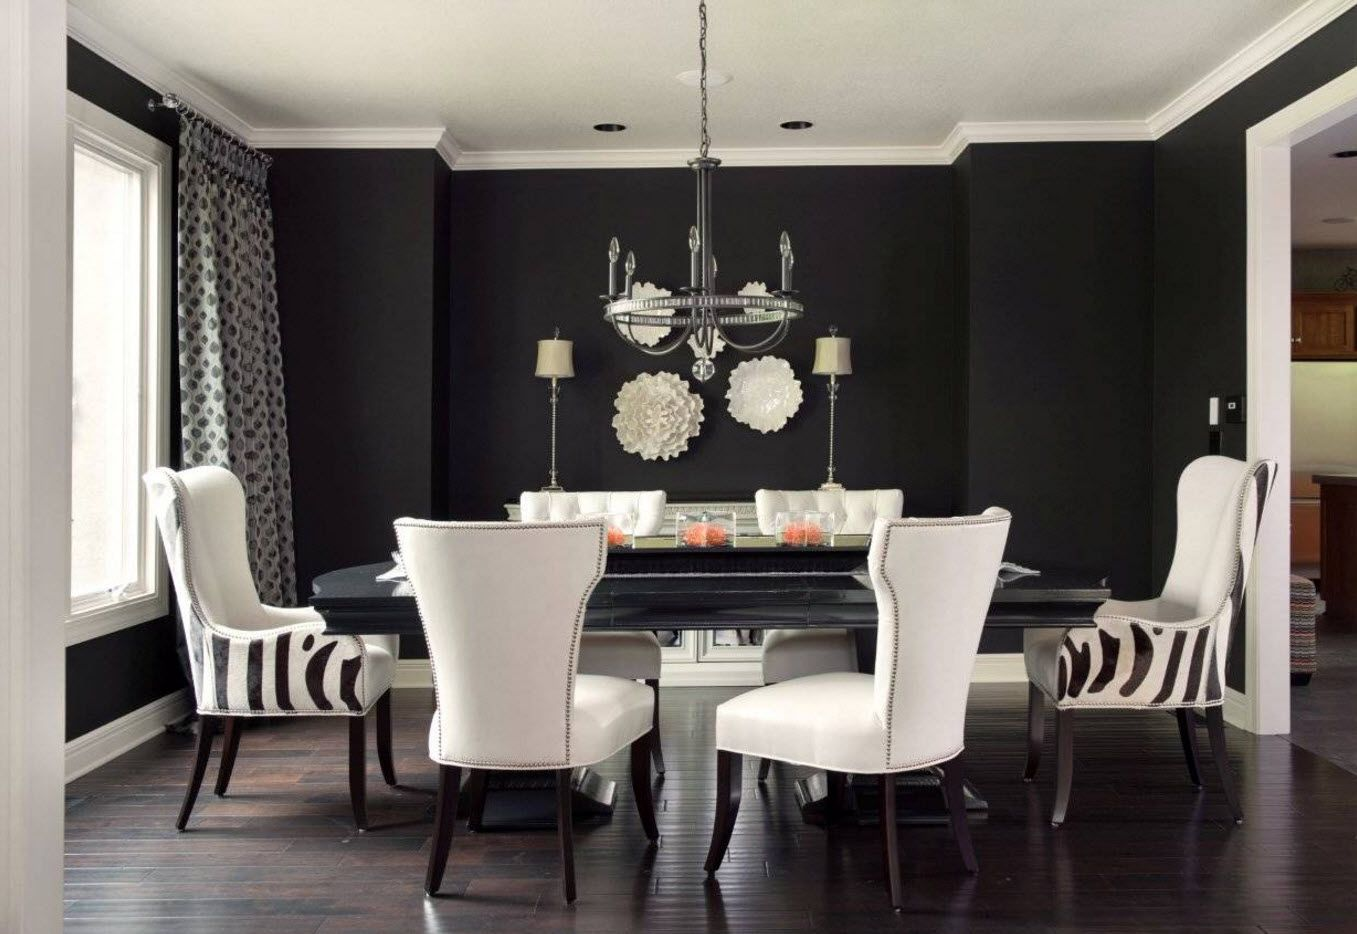 Dining Zone Table and Chairs: Practical and Aesthetic Composition. Dark color theme of the hi-tech premises